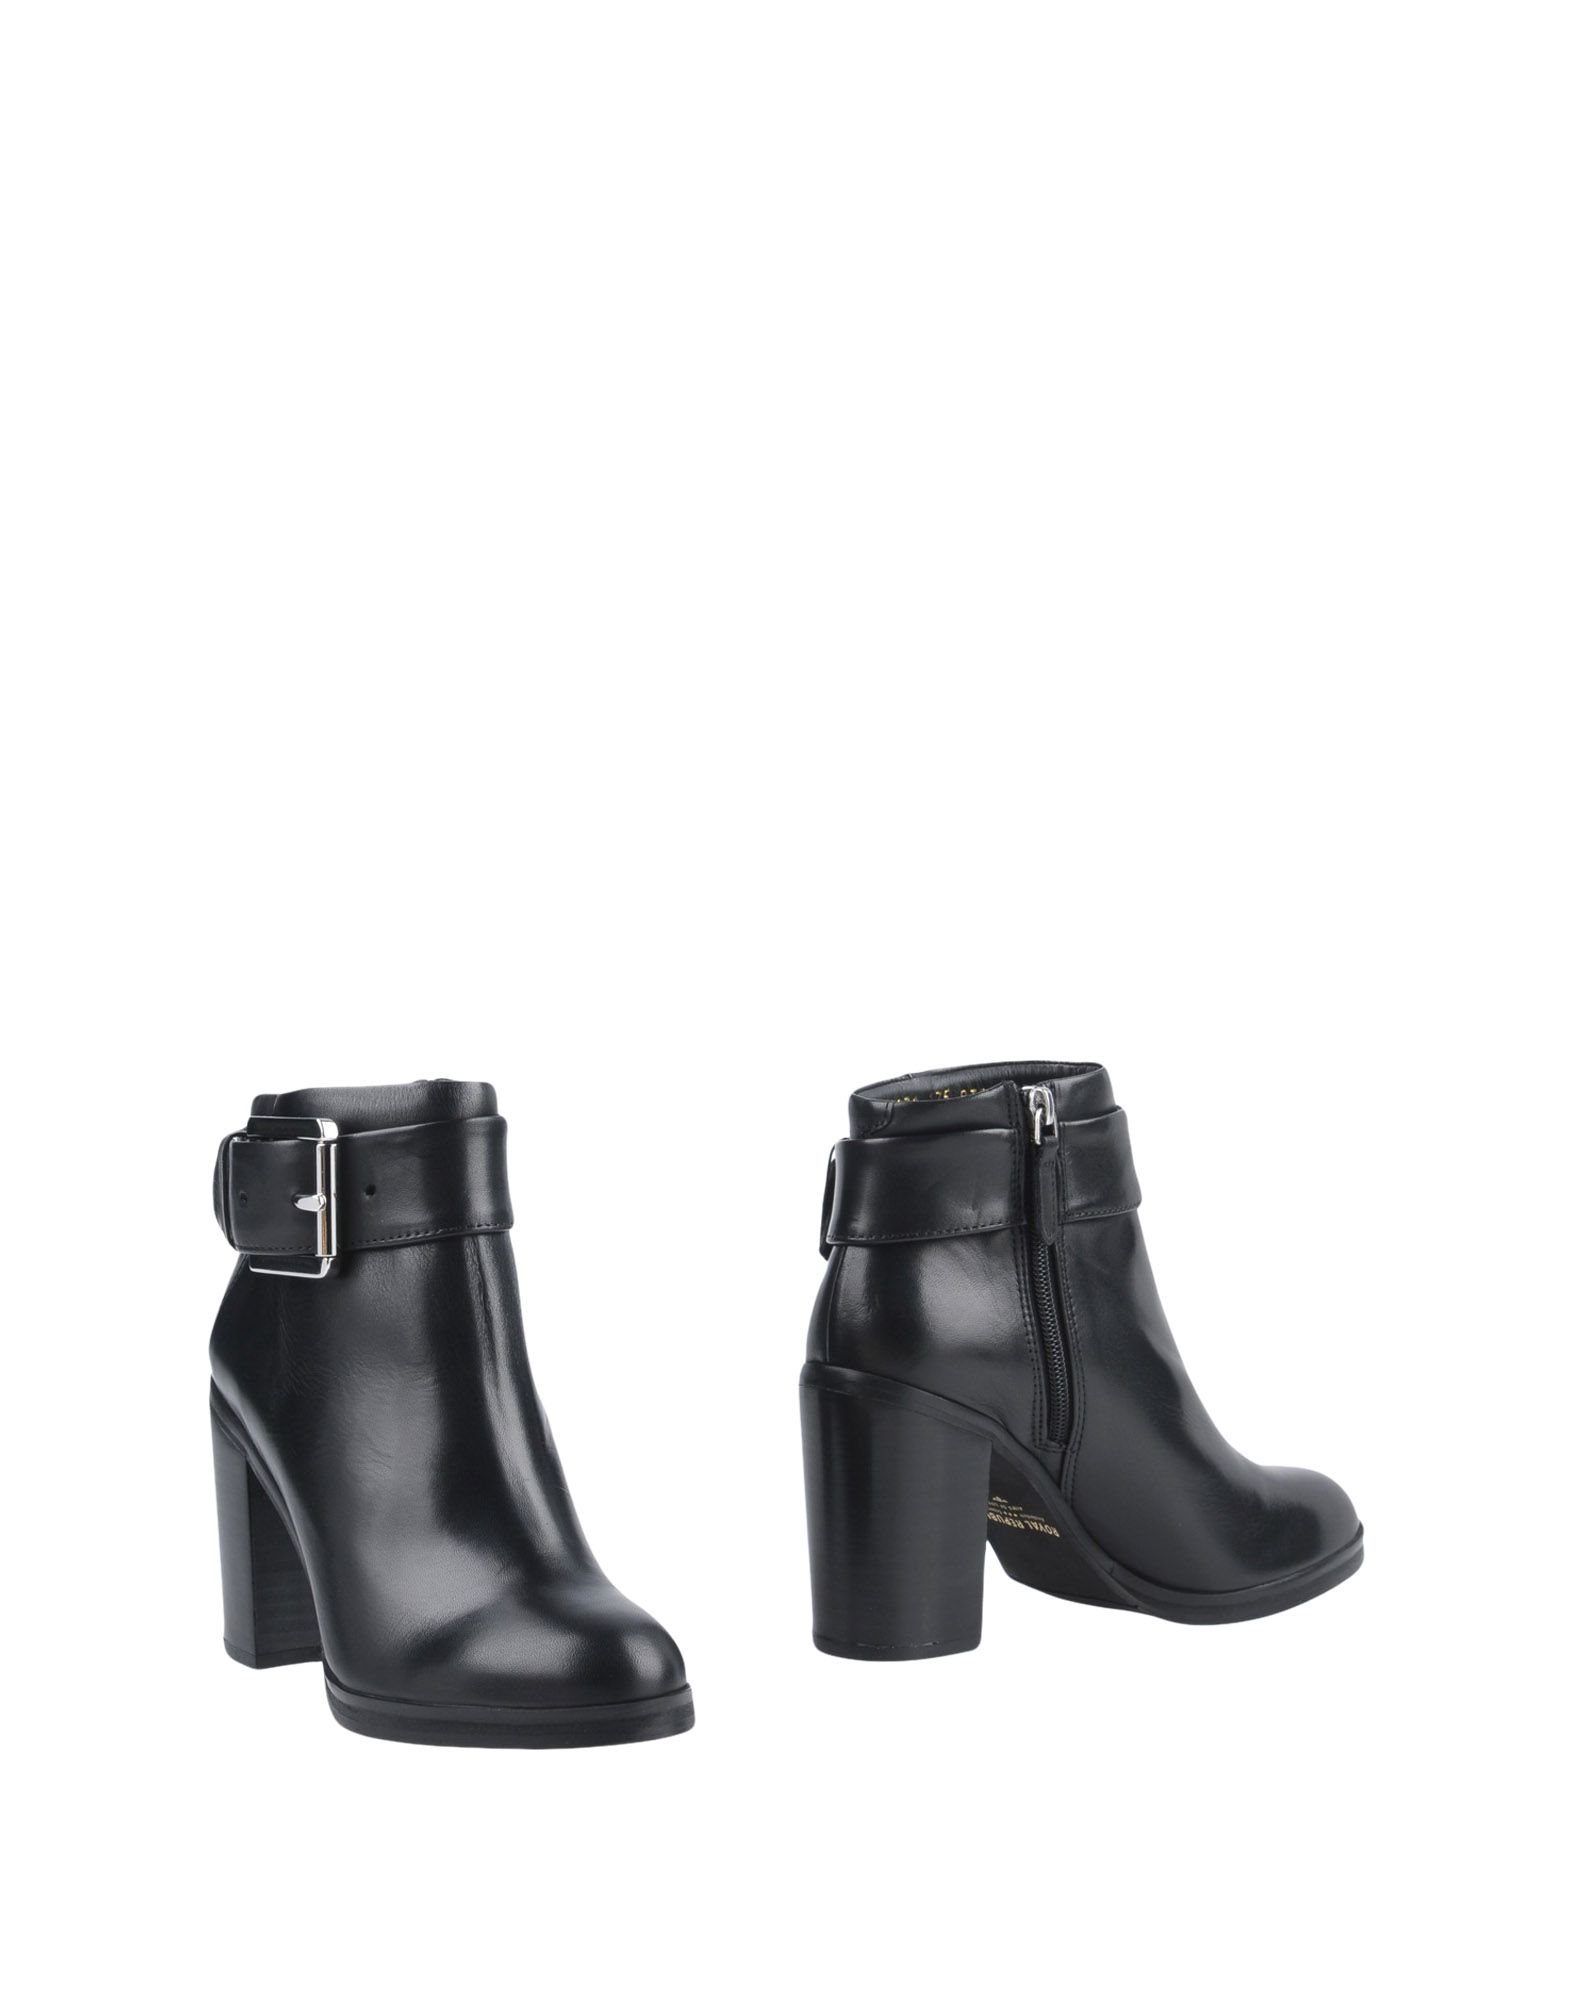 Royal Republiq Stiefelette Damen  11318091ON